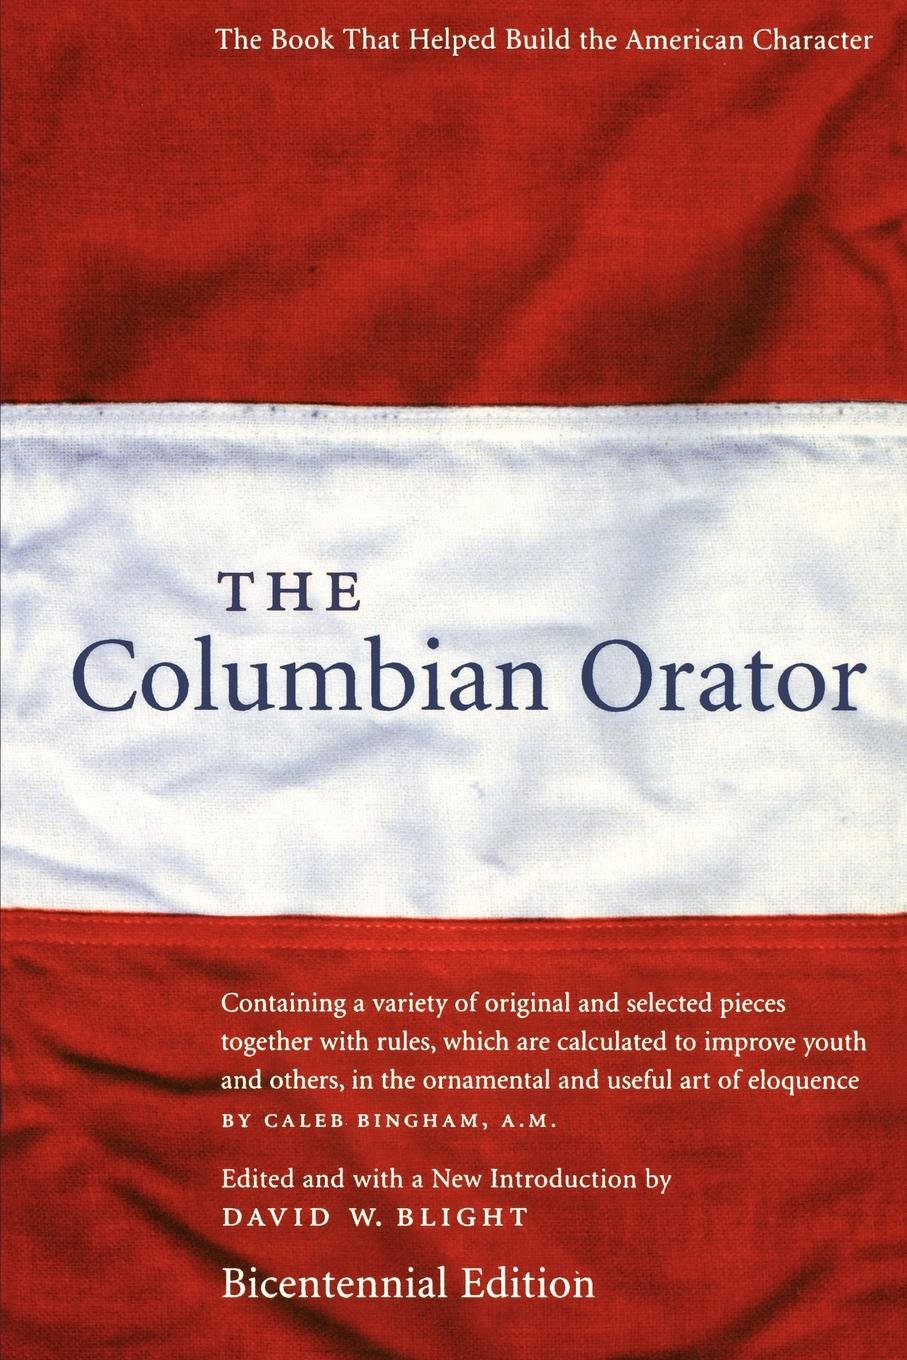 The Columbian Orator: Amazon co uk: David W  Blight